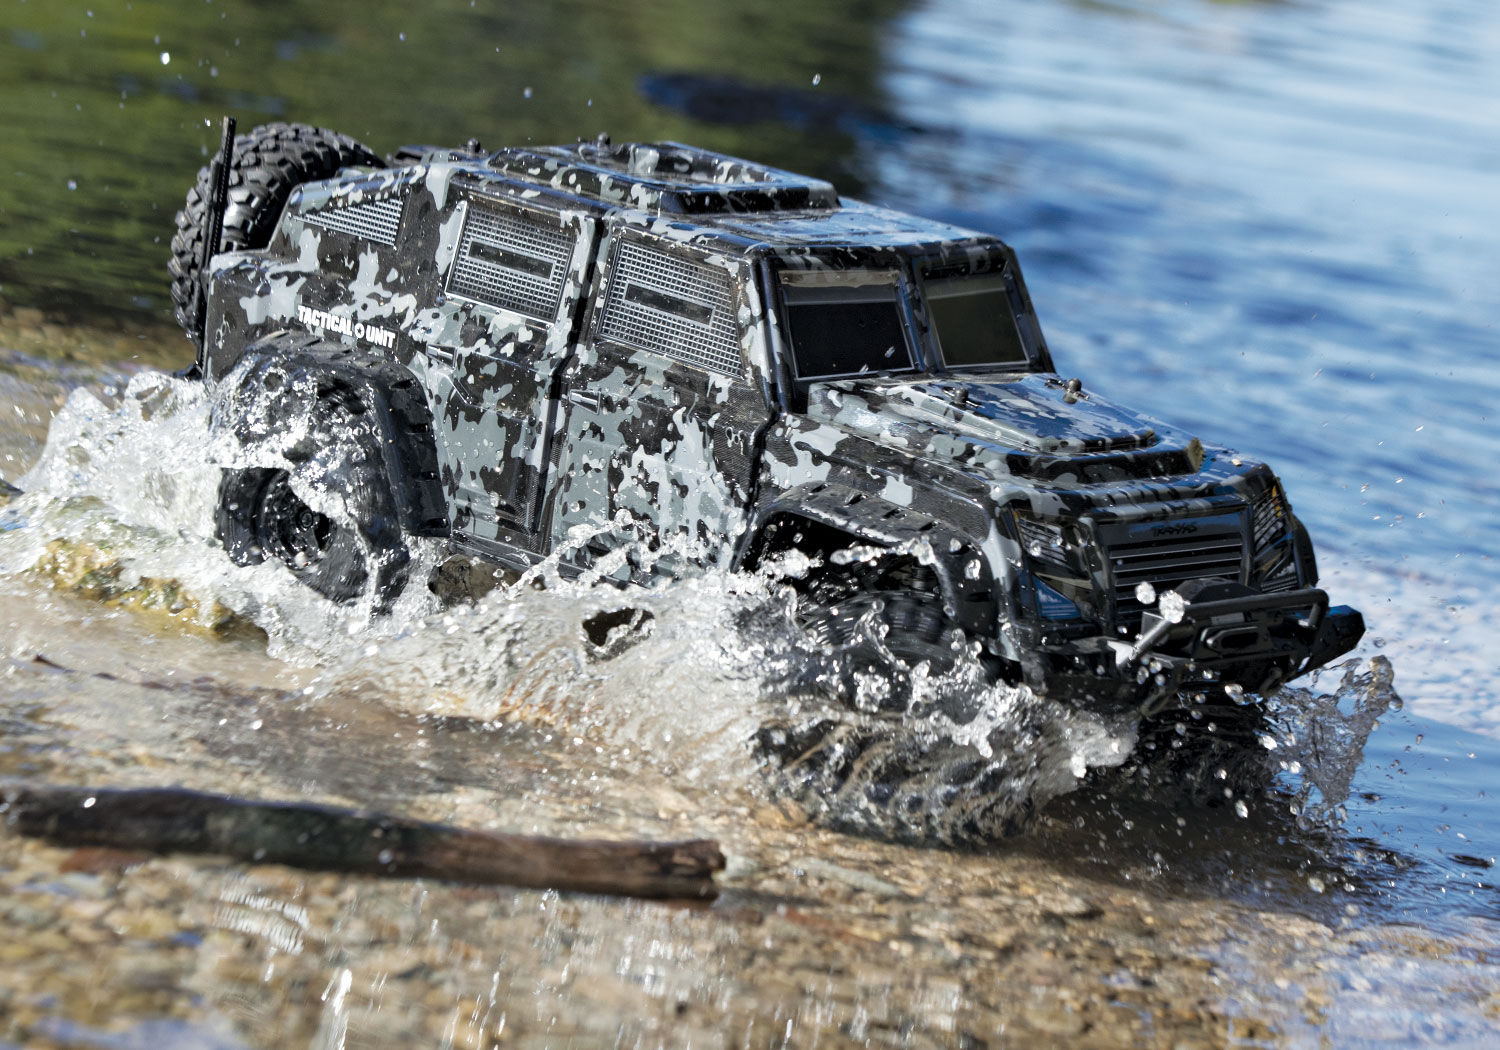 Traxxas Trx 4 Tactical Unit Rock Crawler 82066 1995 Toyota Supra Air Conditioning System 8211 Troubleshooting Previous Next